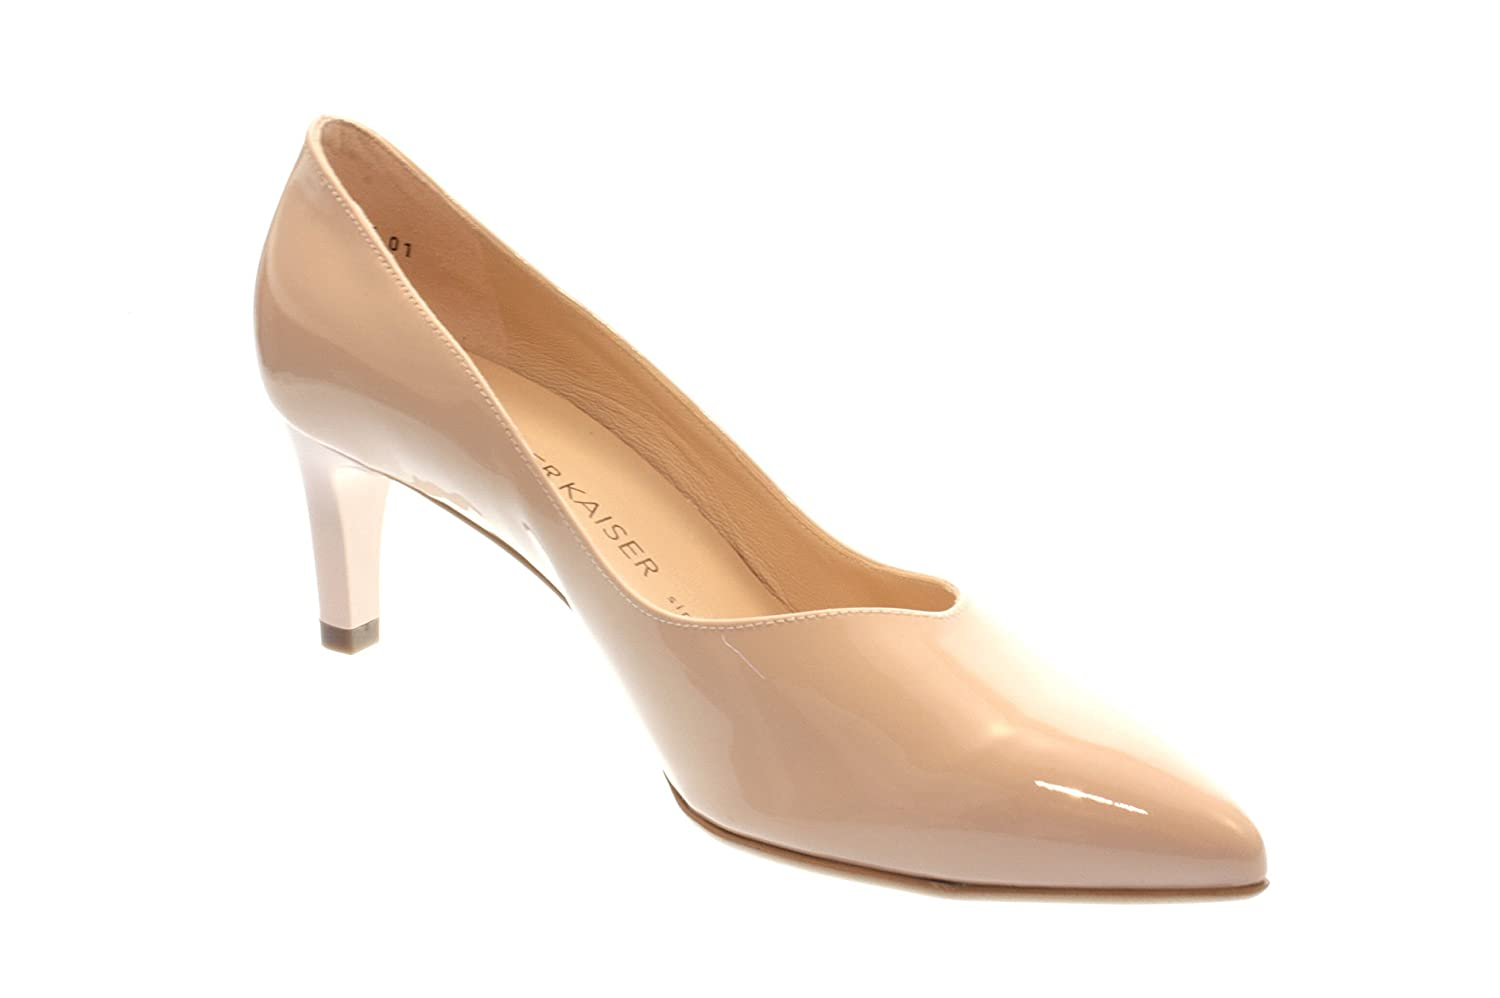 Peter Powder Kaiser Damen Pumps Nura Powder Peter (Beige) 67951035 Powder 2a57f7